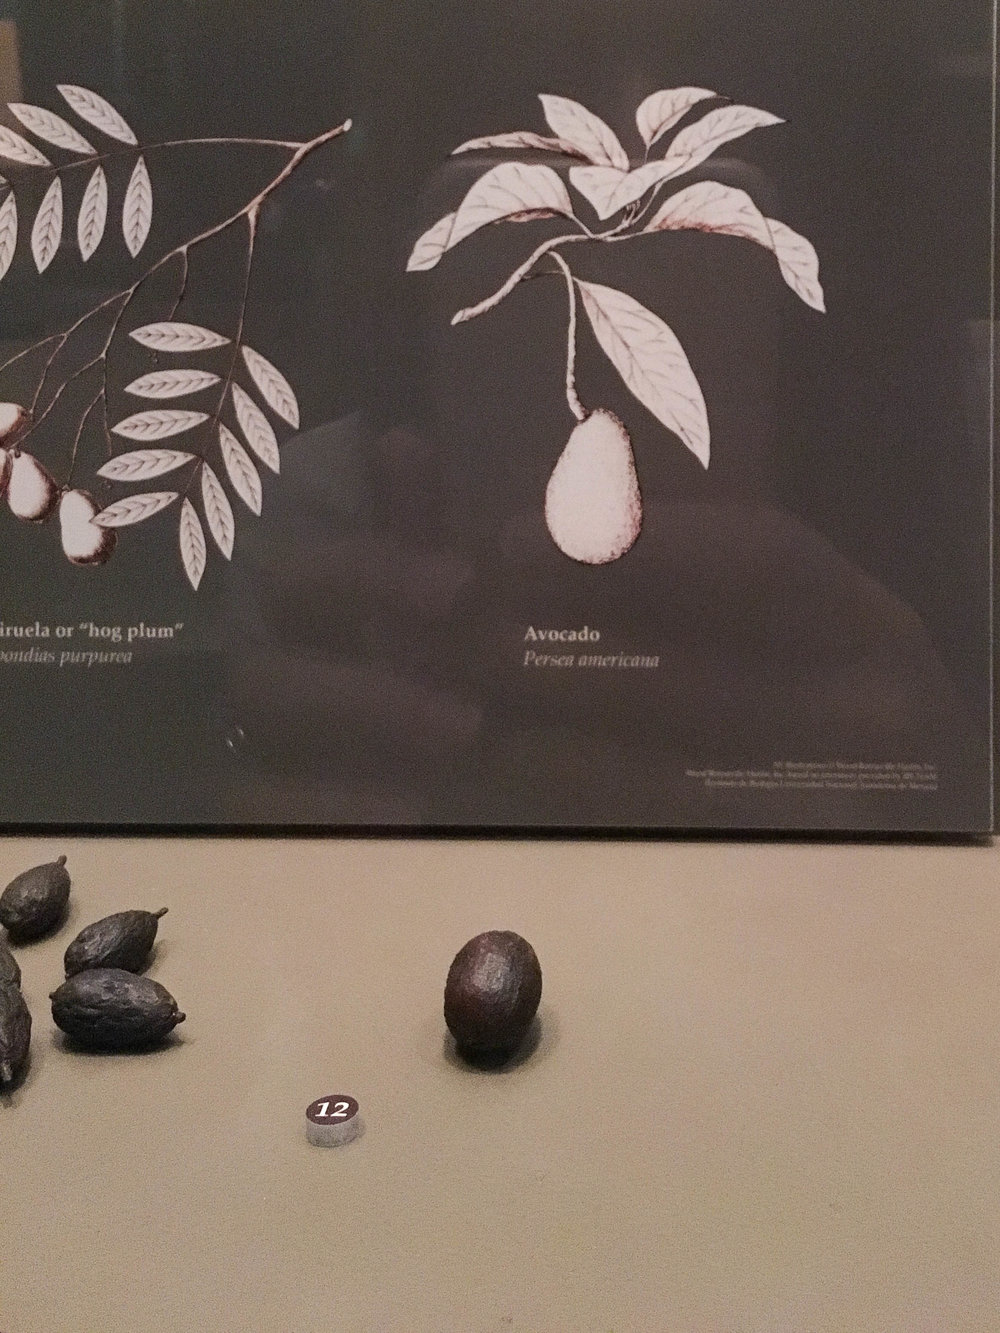 Ancient avocado! It's tiny - about the size of a golf ball!